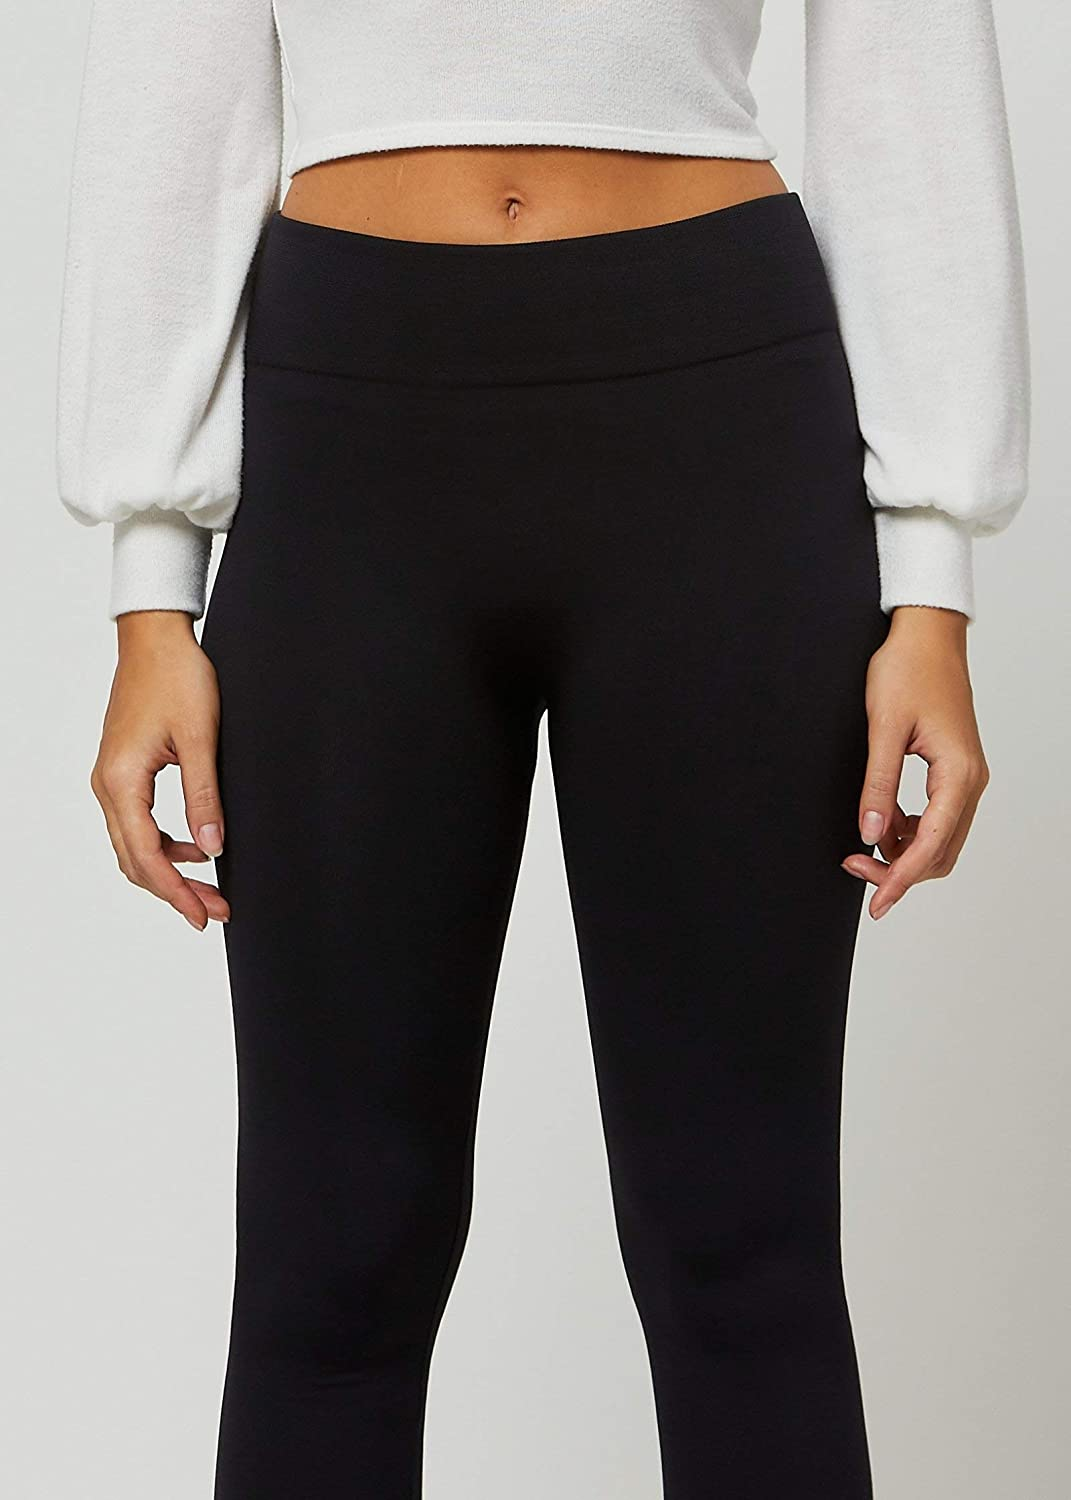 Premium Women's Fleece Lined Leggings - High Waist - Regular and Plus Size - 20+ Colors at  Women's Clothing store